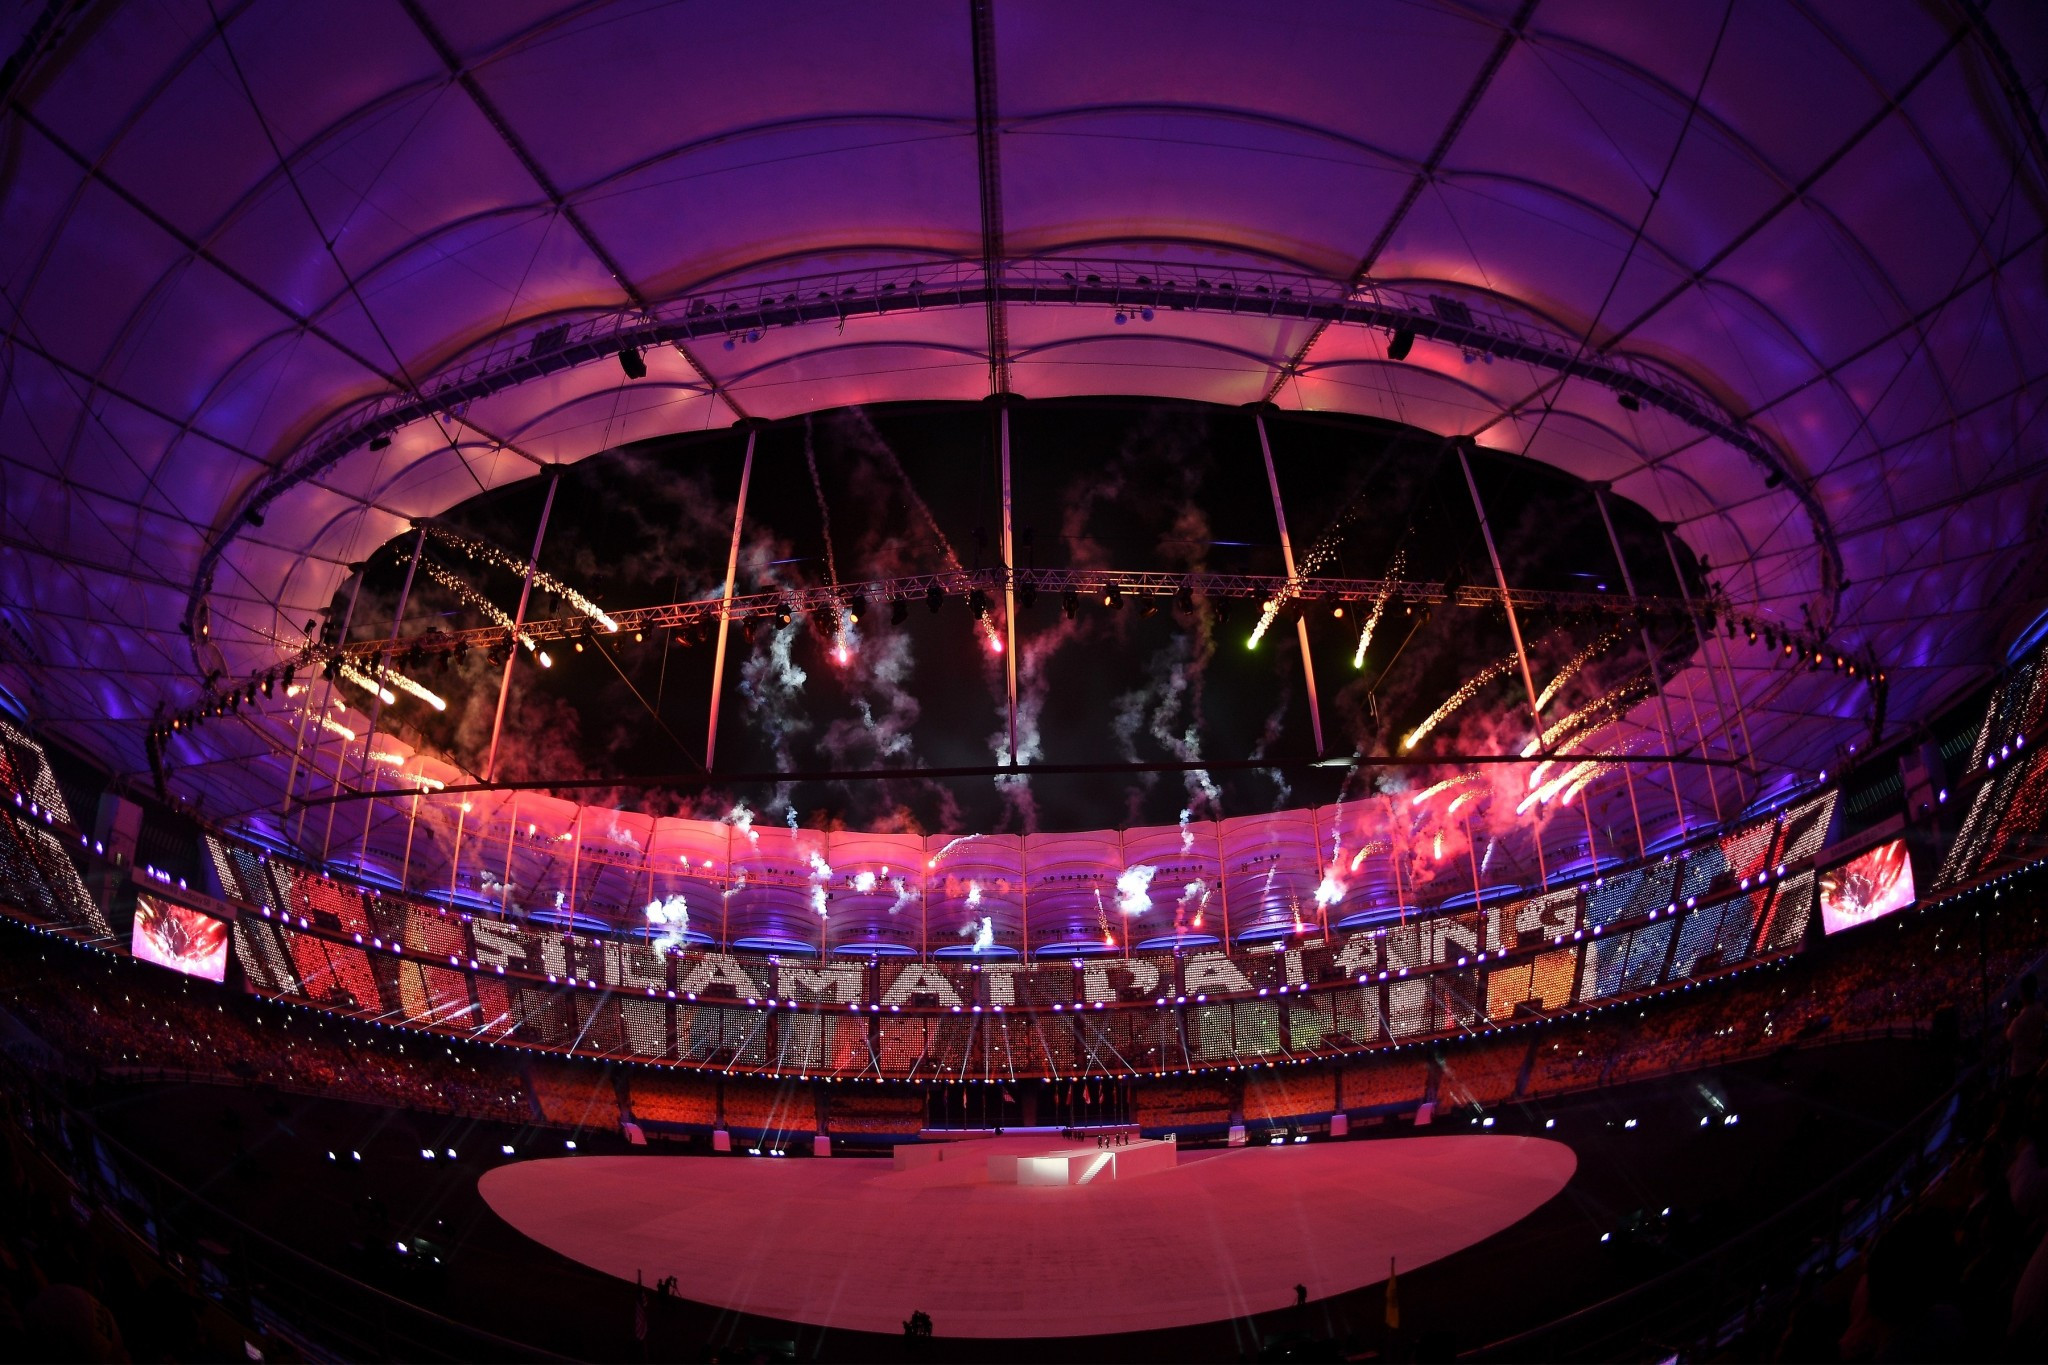 The South East Asian Games in Kuala Lumpur were officially declared open by Malaysian Prime Minister Najib Razak ©Getty Images